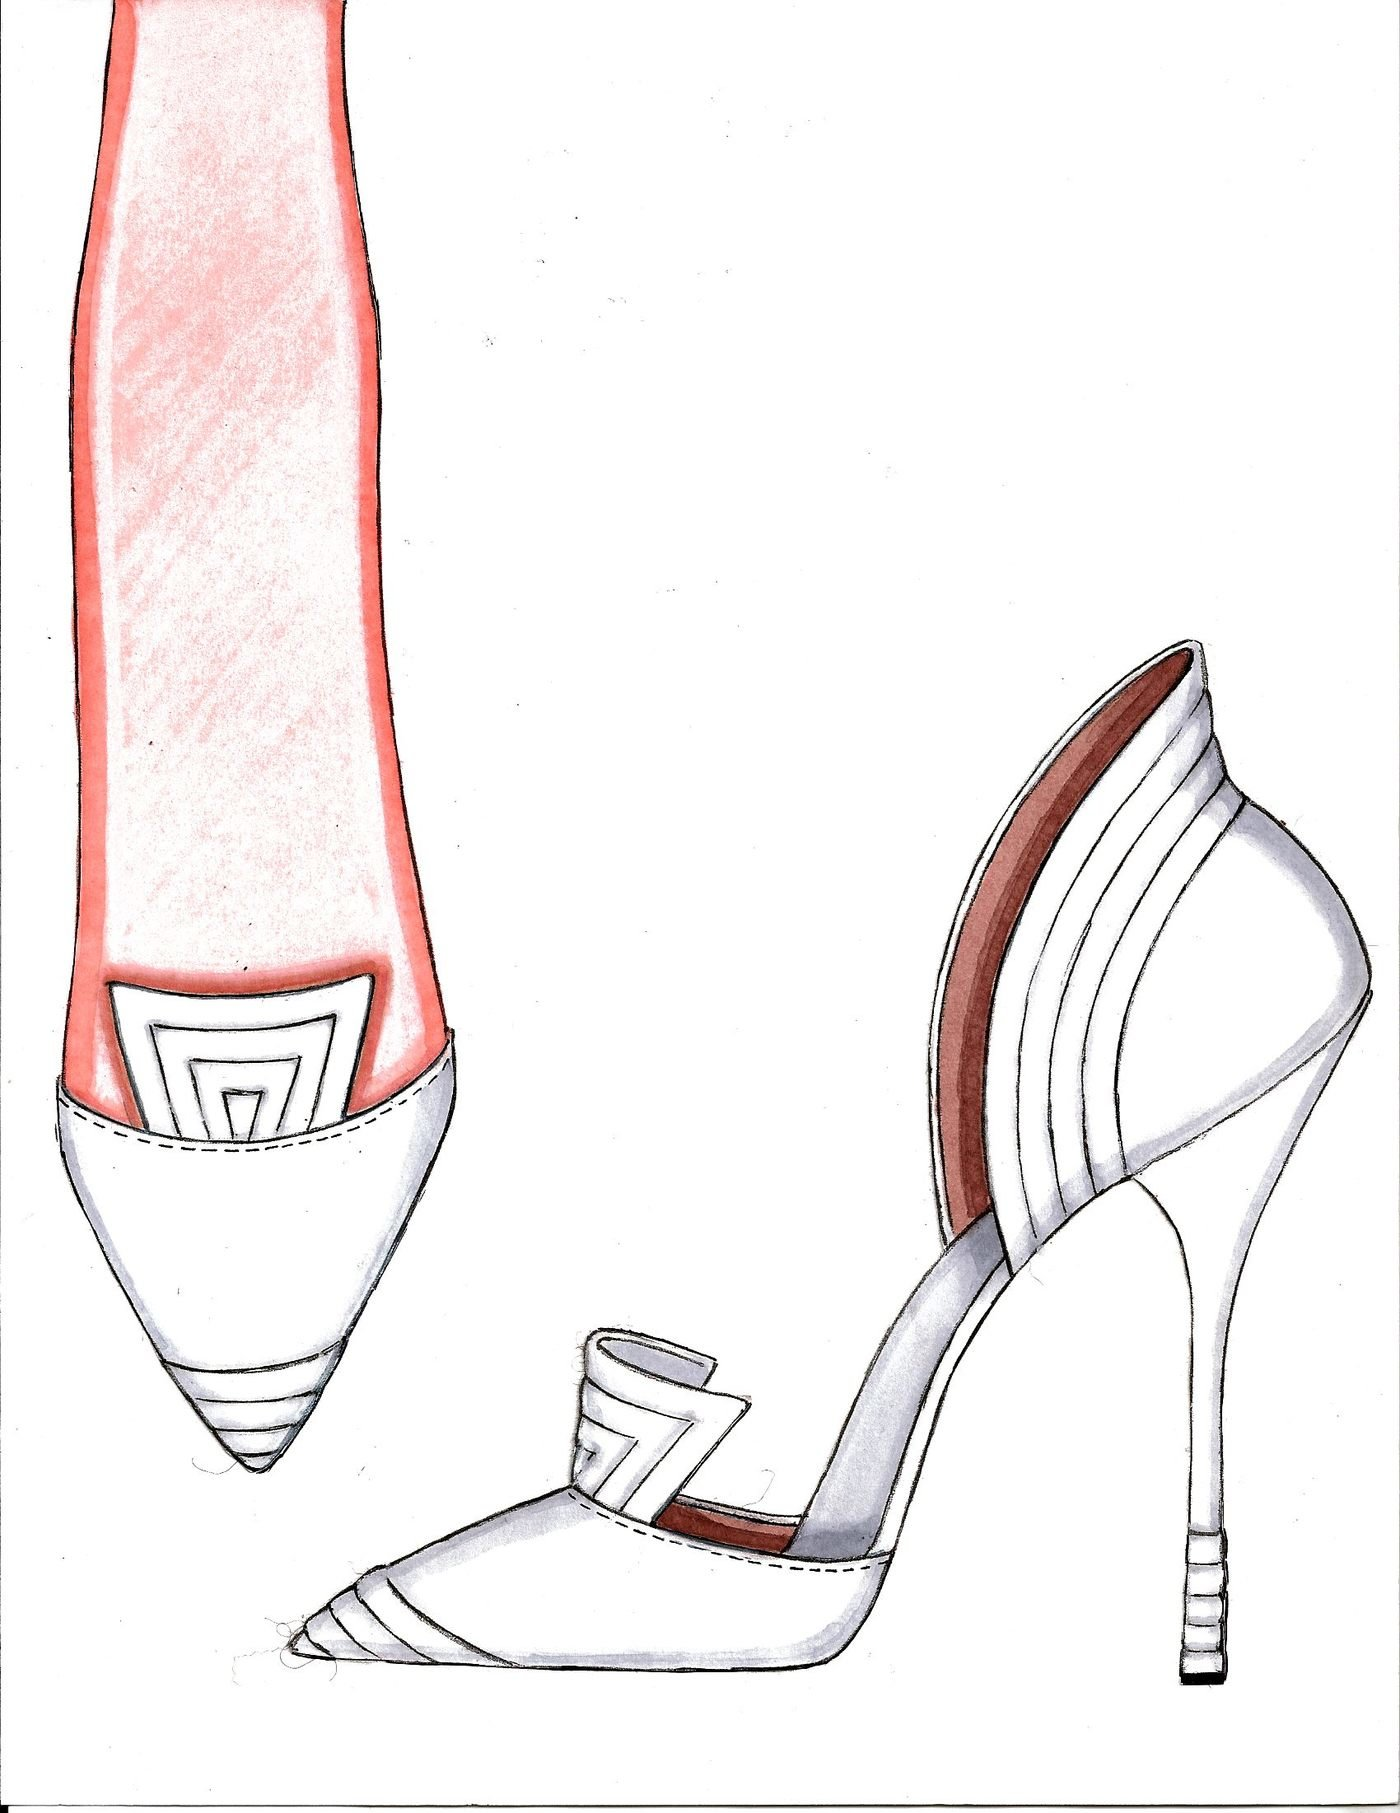 M: bratz fashion designer Fashion sketches of shoes